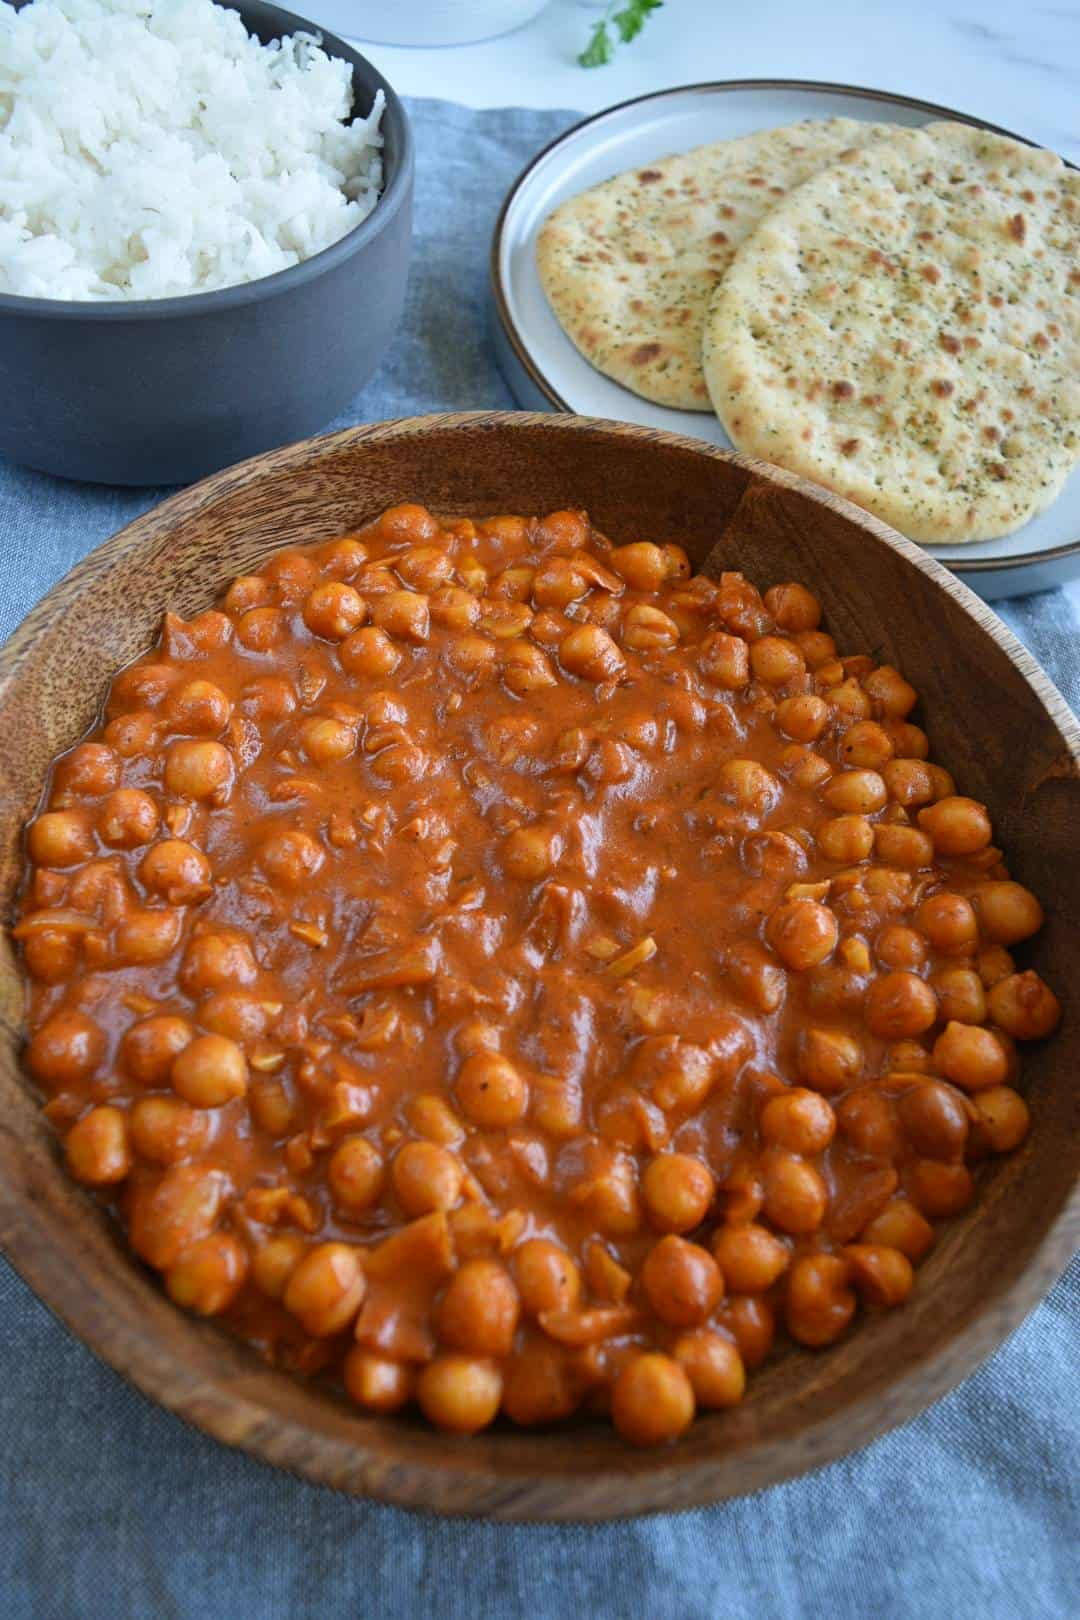 Chana masala in a wooden bowl with rice in the background.